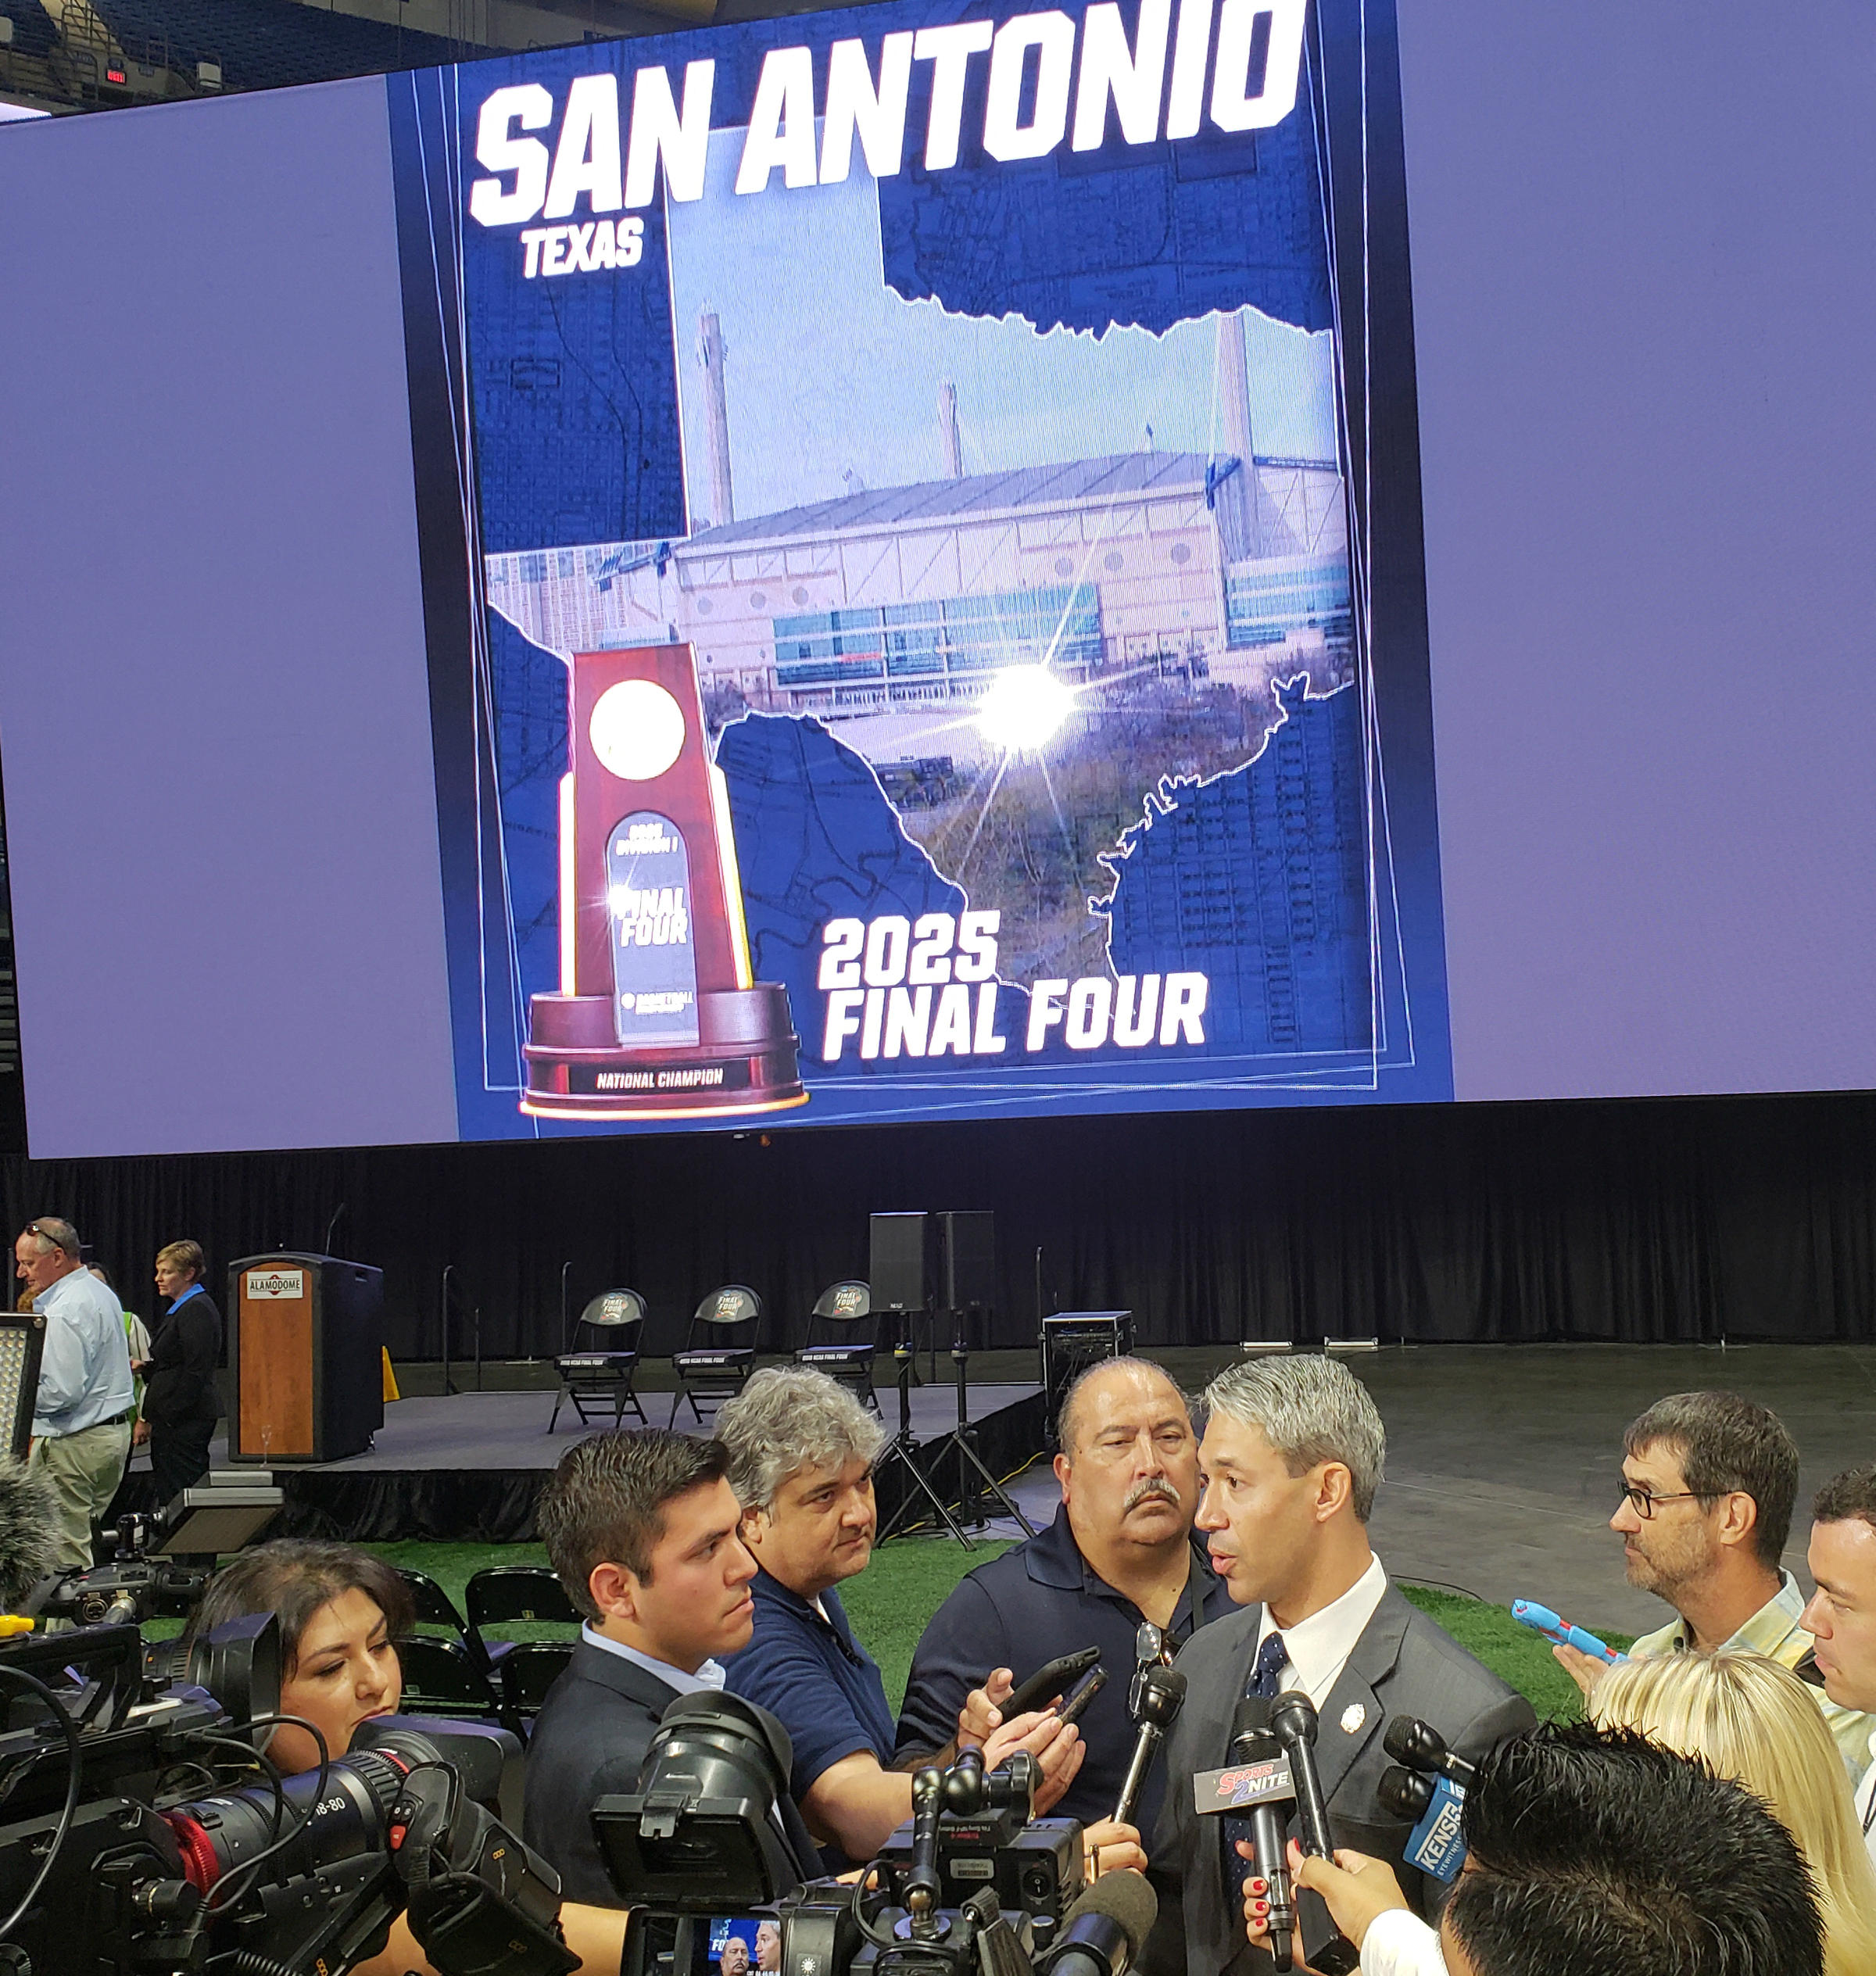 Houston to host NCAA Men's Final Four in 2023